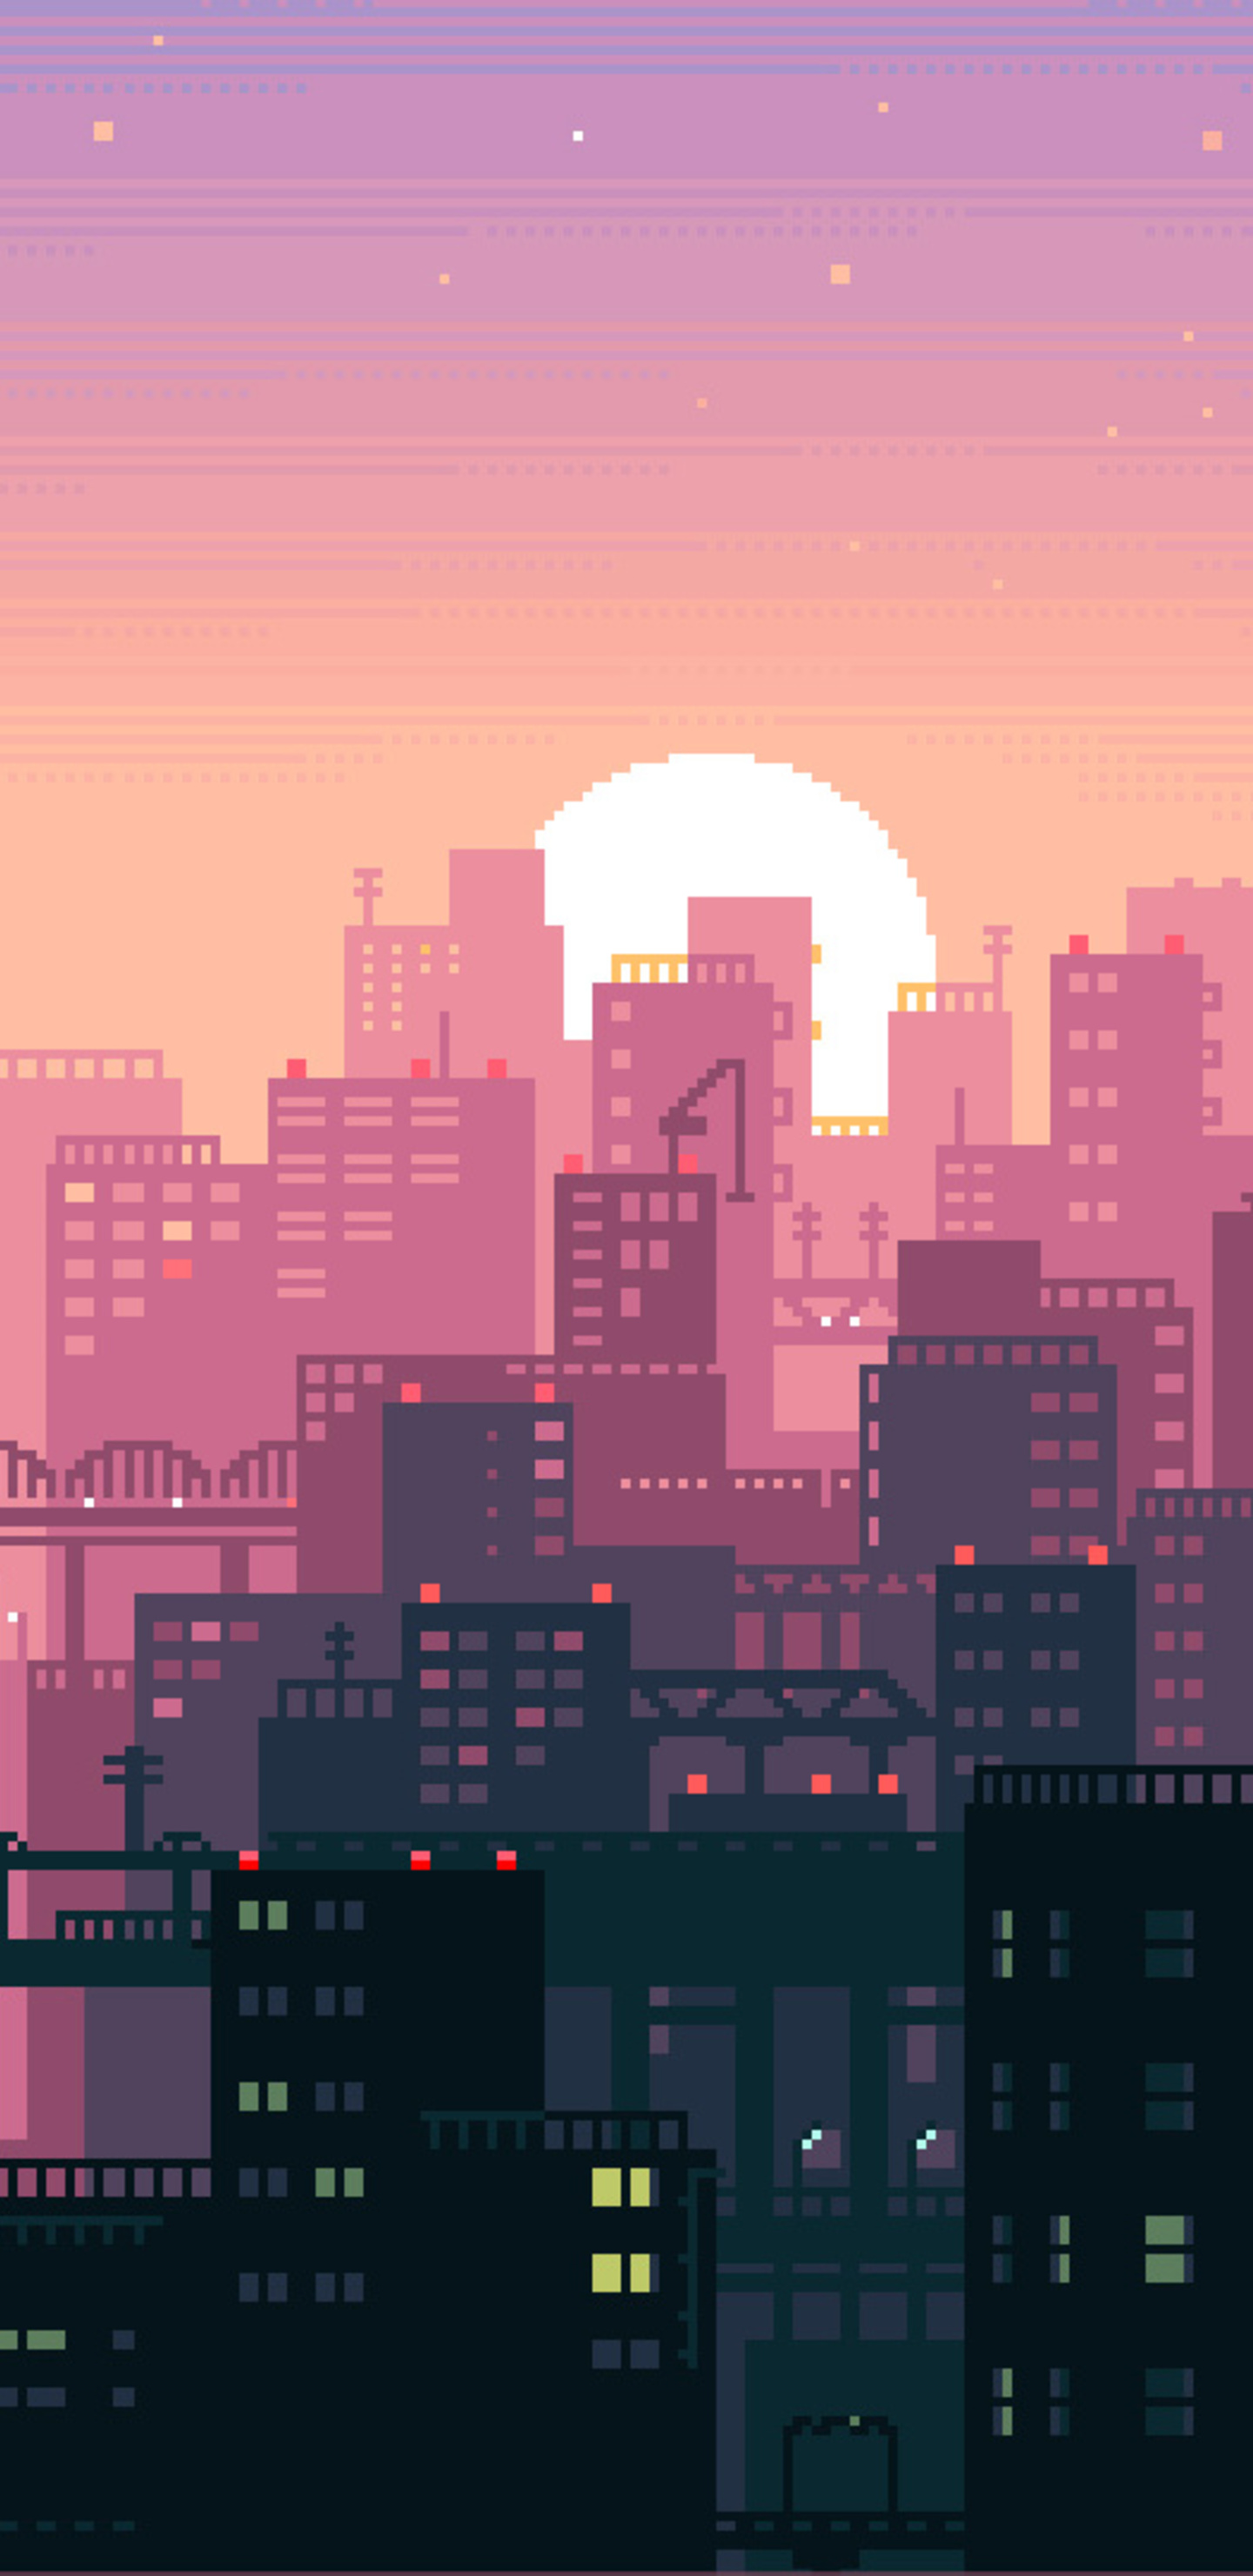 8-bit-pixel-art-city-2o.jpg